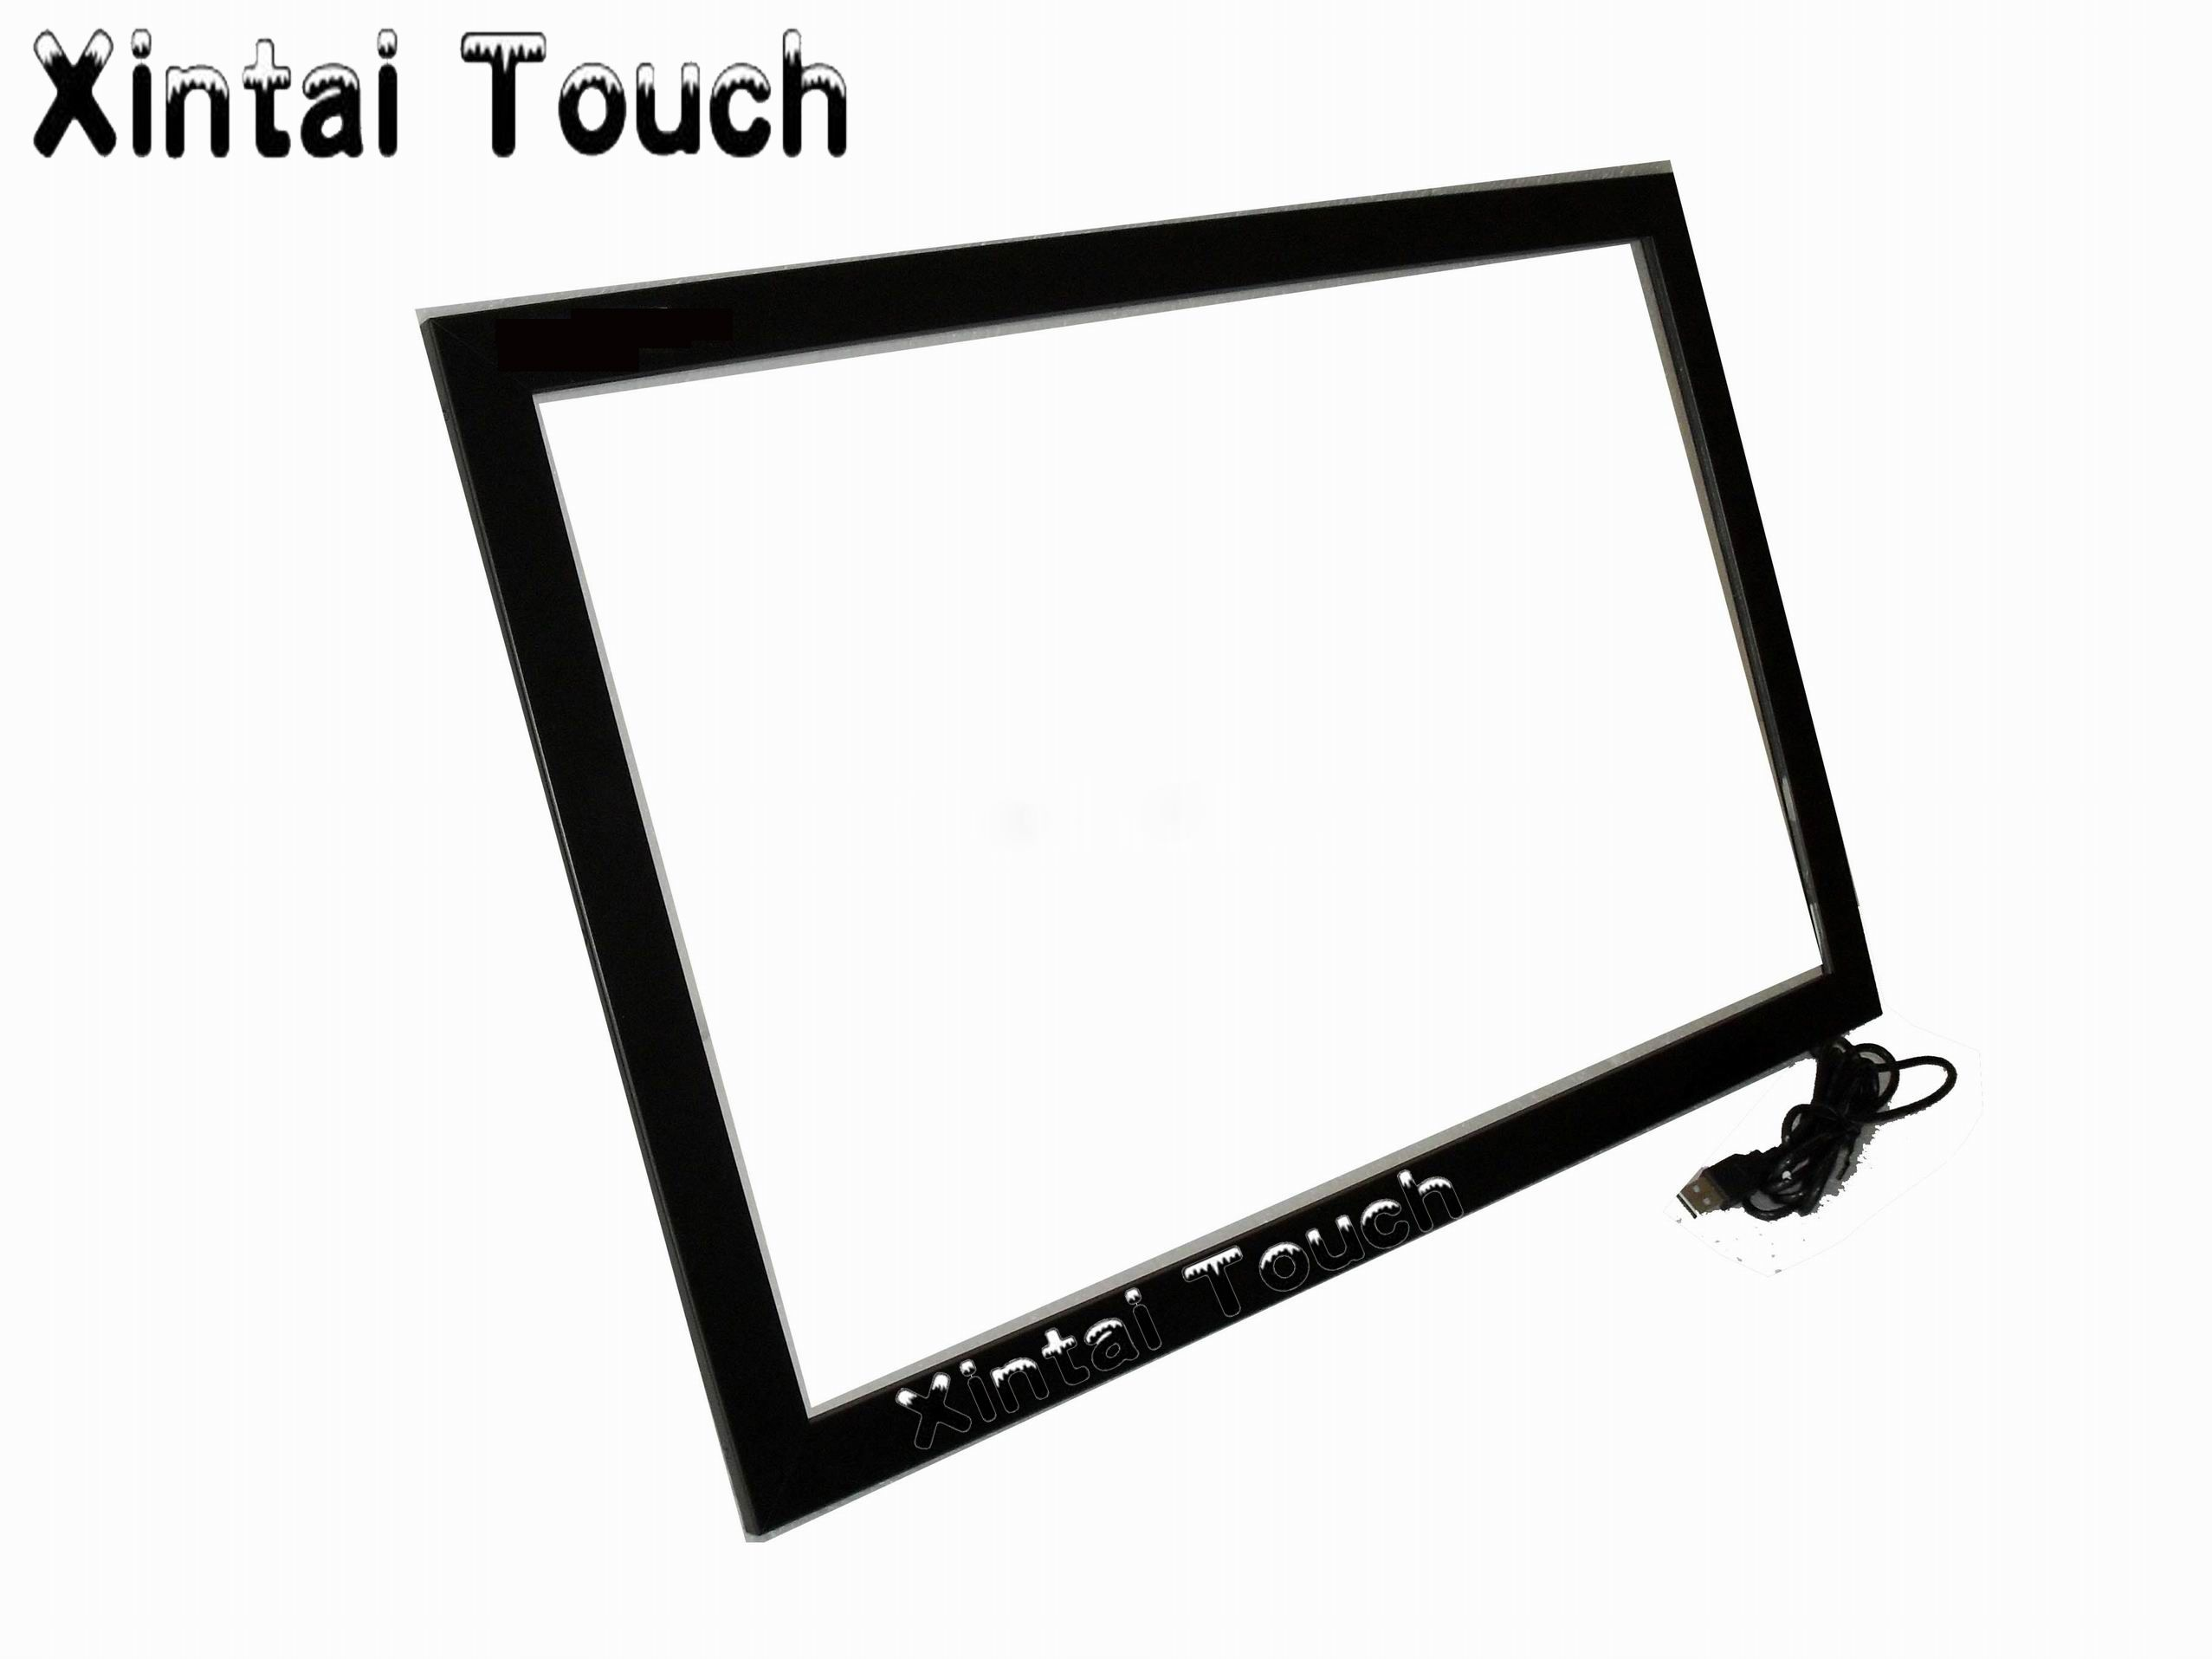 Free Shipping! 85 Inch 10 Multi Touch Screen Frame/ Multitouch IR touch screen overlay kit For Interactive Table/Touch Kiosk